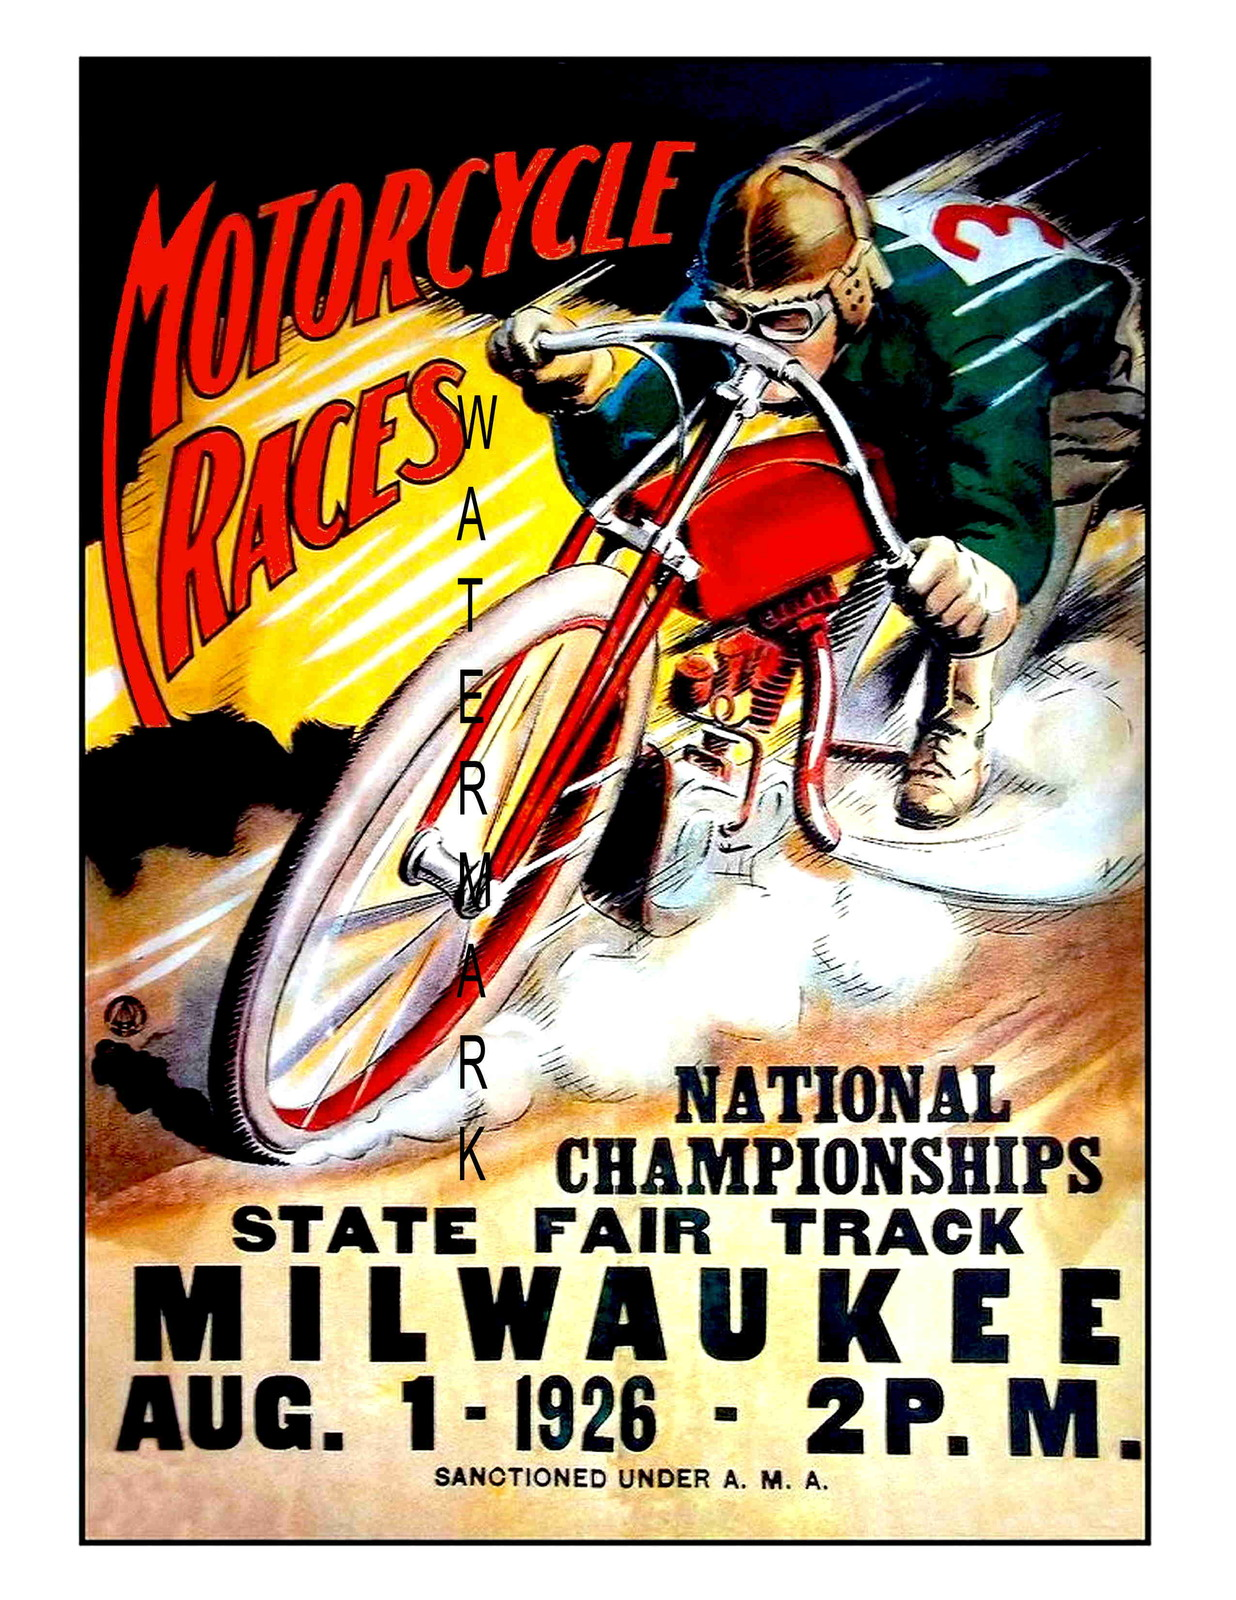 Milwaukee Vintage 1926 Motorcycle Racing 13 x 10 inch Advert Giclee CANVAS Print